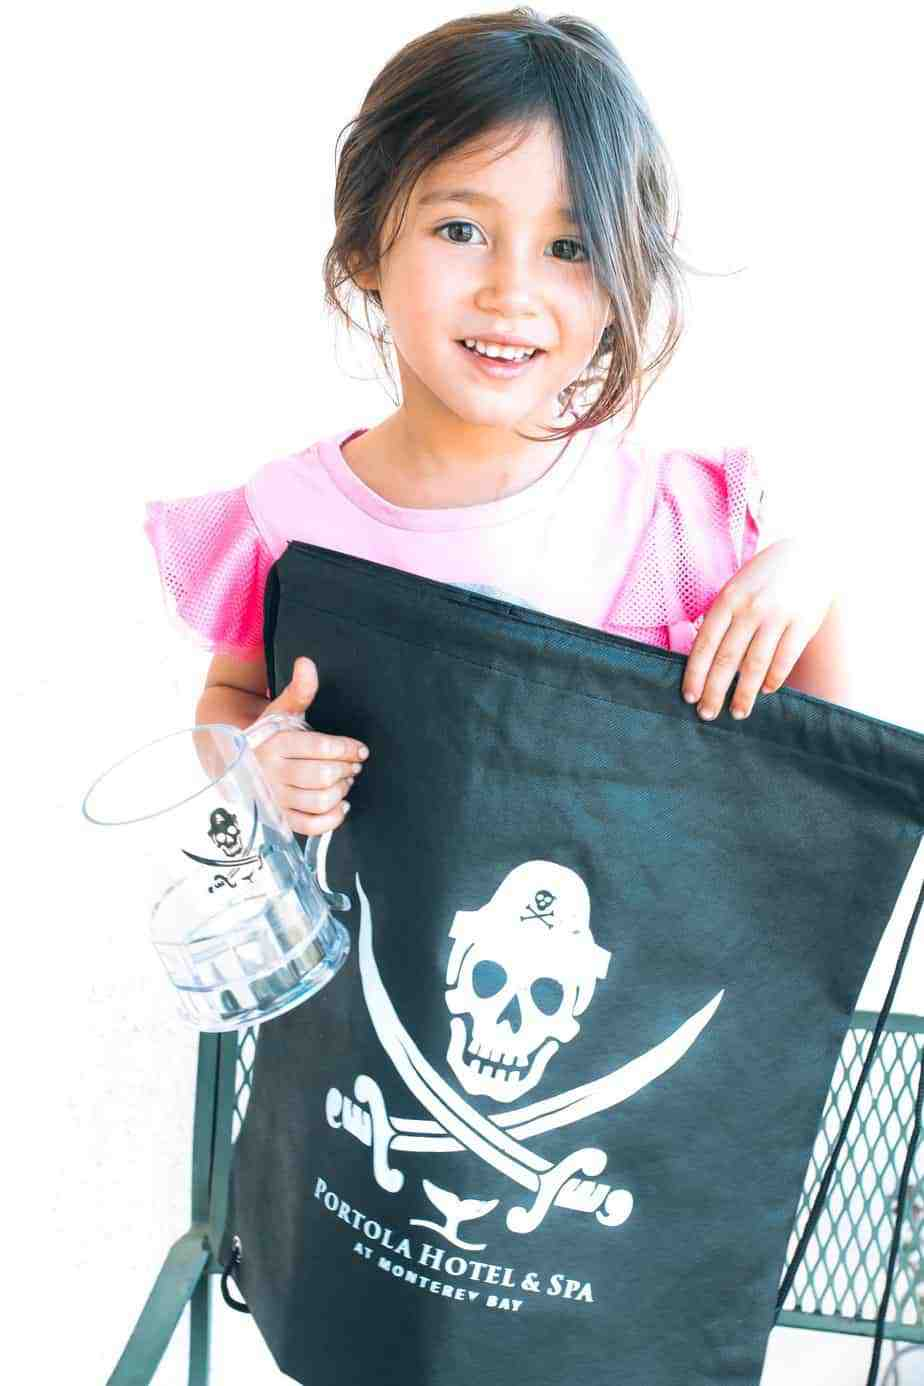 portola hotel and spa pirate program